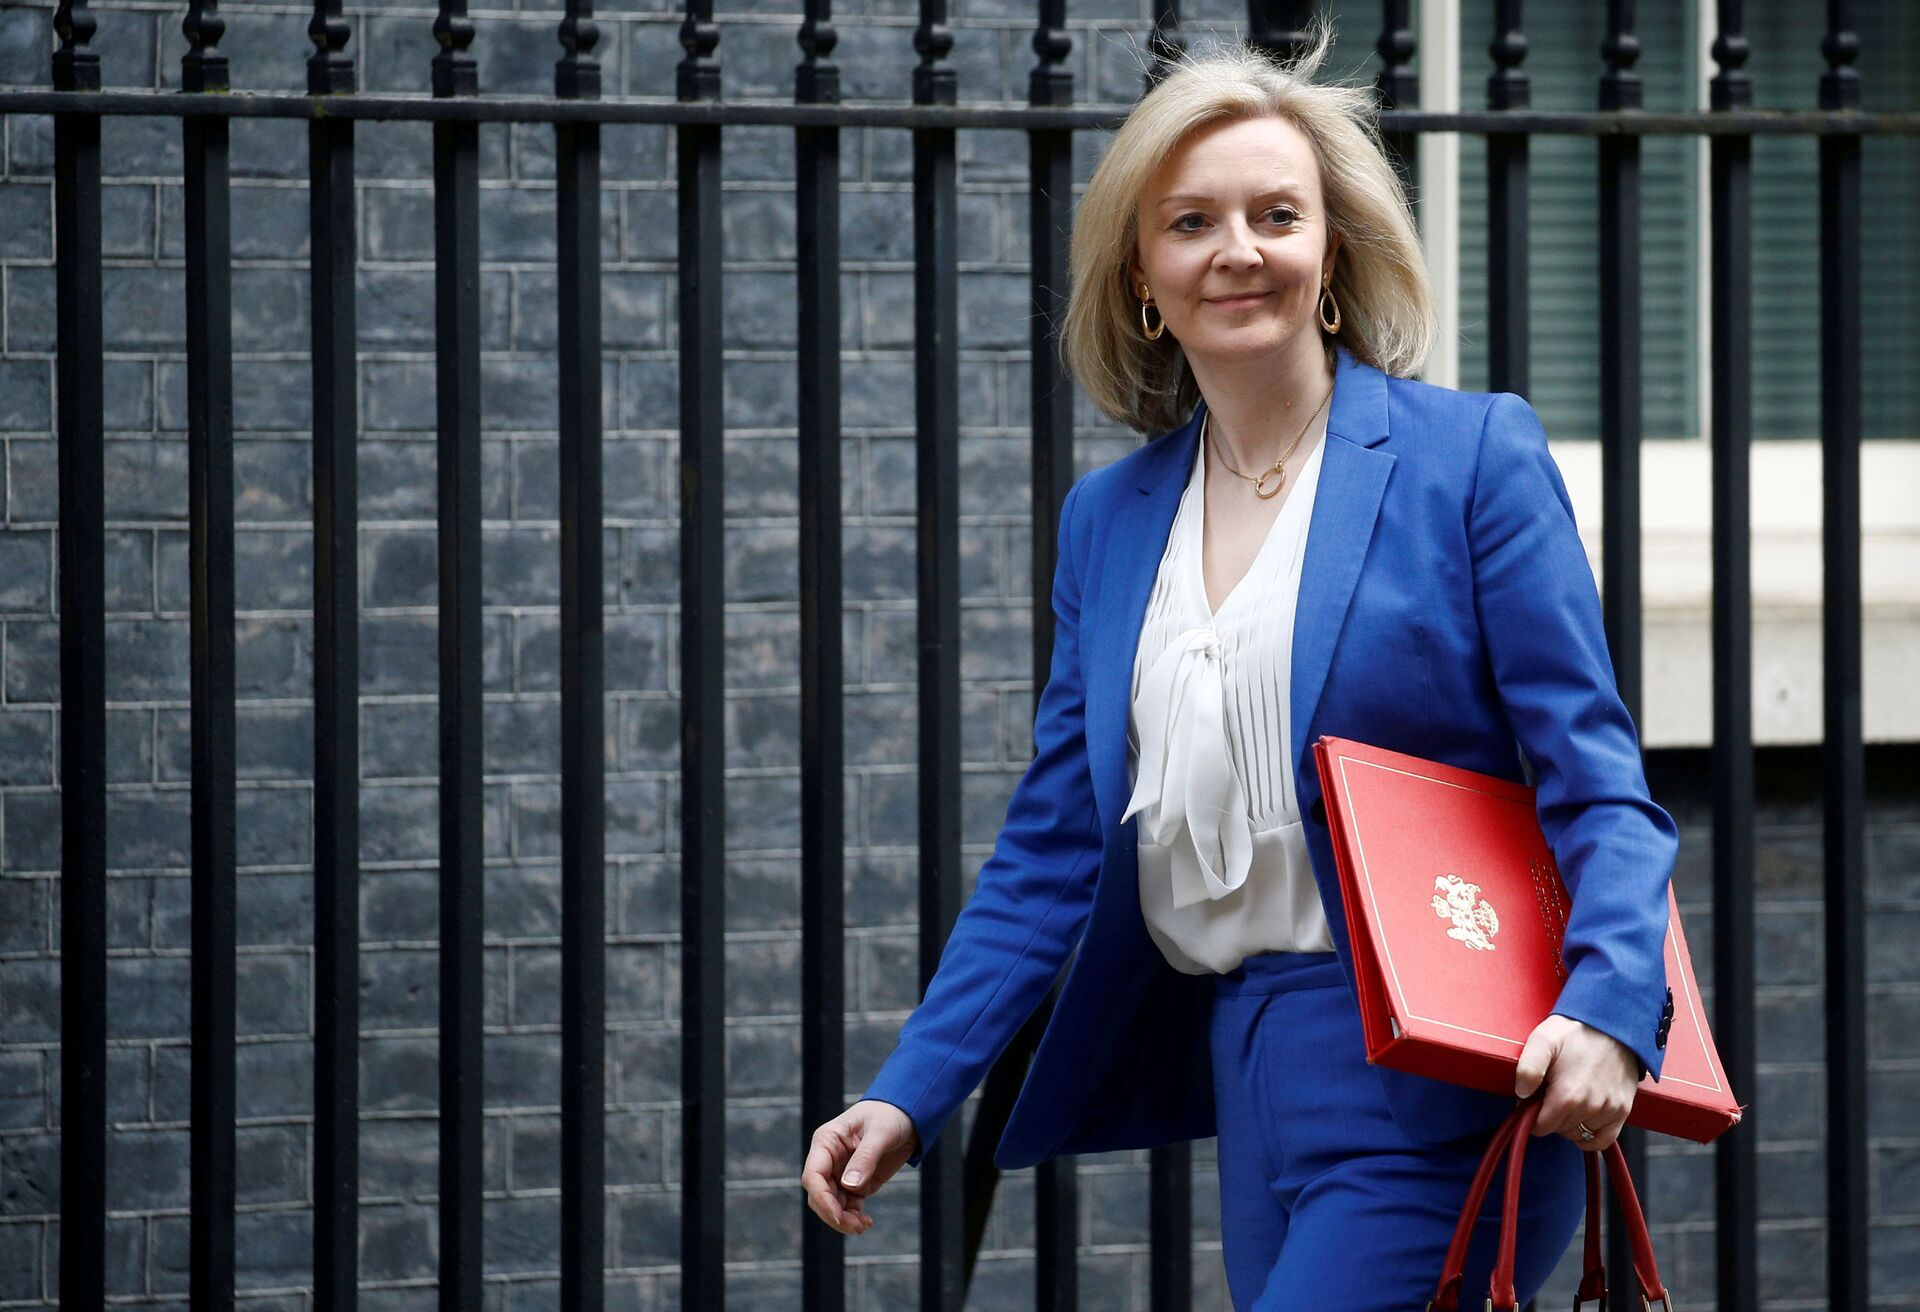 Britain's Secretary of State of International Trade and Minister for Women and Equalities Liz Truss is seen outside Downing Street, in London, Britain March 17, 2020. - Sputnik International, 1920, 15.09.2021